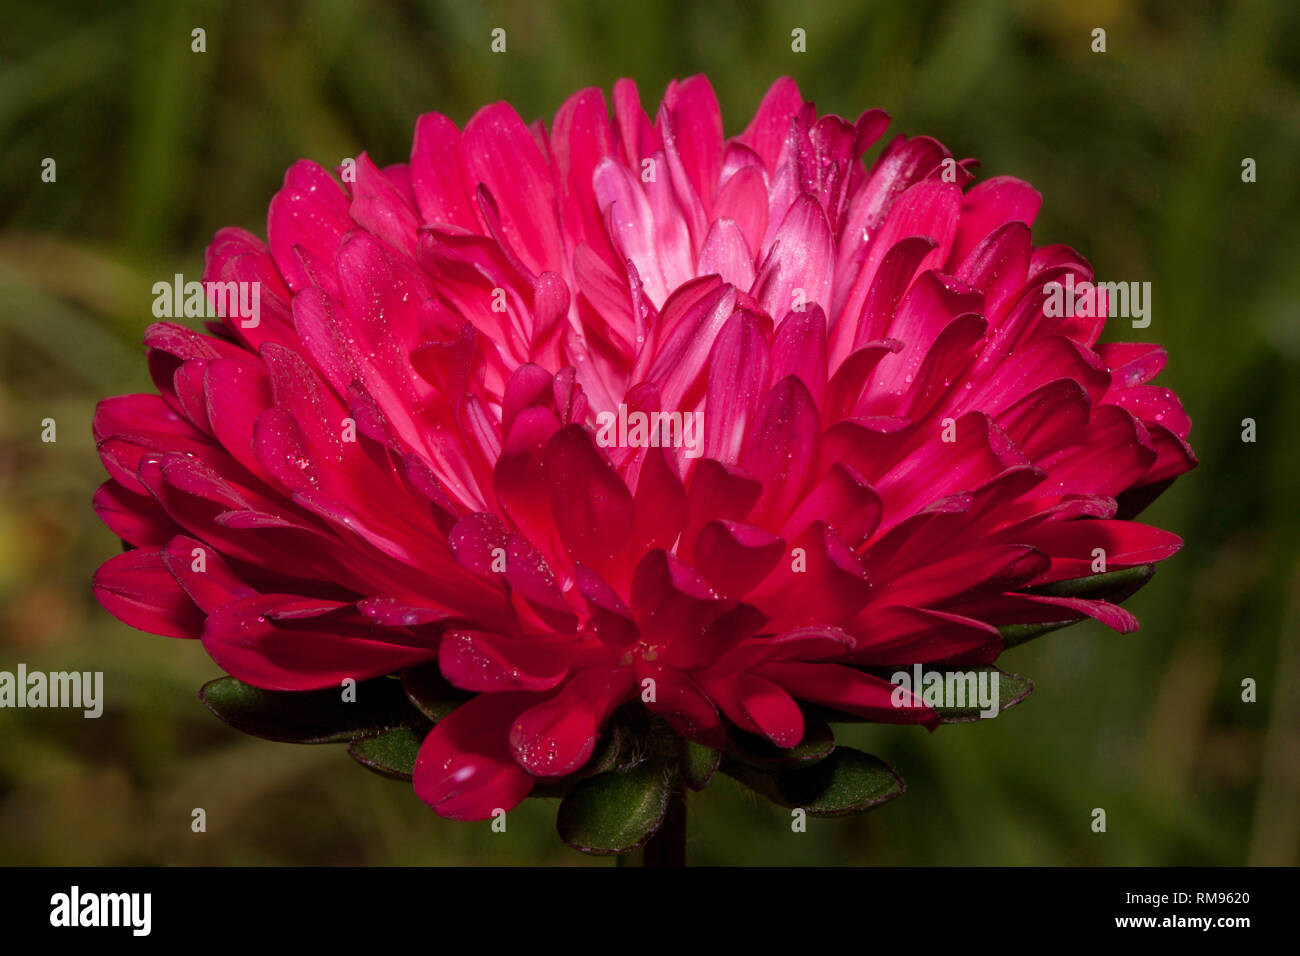 Beautiful purple callistephus is growing in the spring garden. Callistephus chinensis or china aster. Live nature. - Stock Image